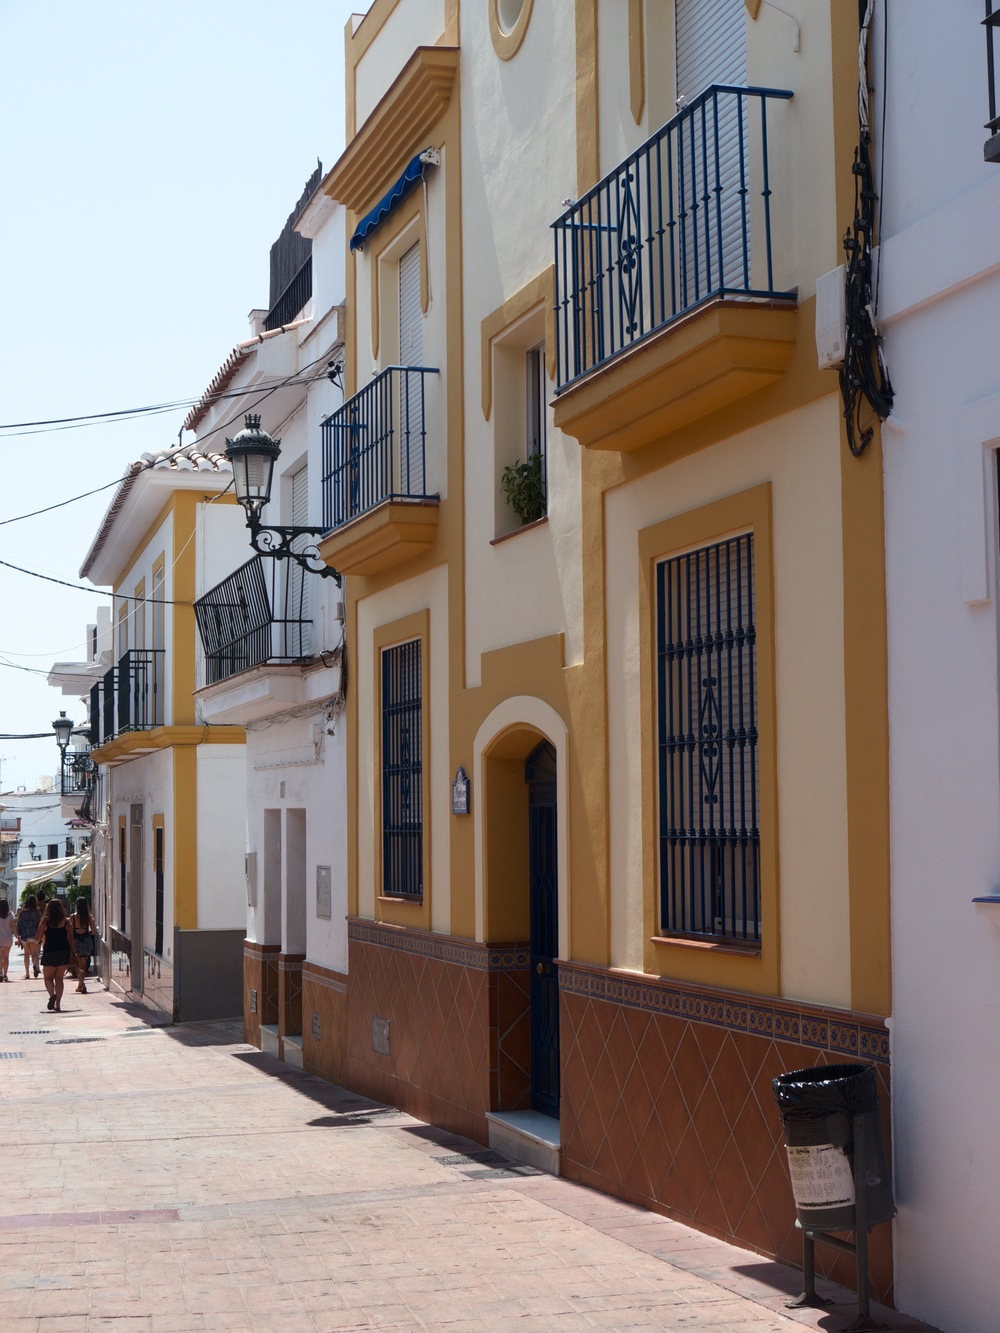 Nerja, Spain- Spent two weeks in this little Andalusian city as part of a Spanish immersion program.